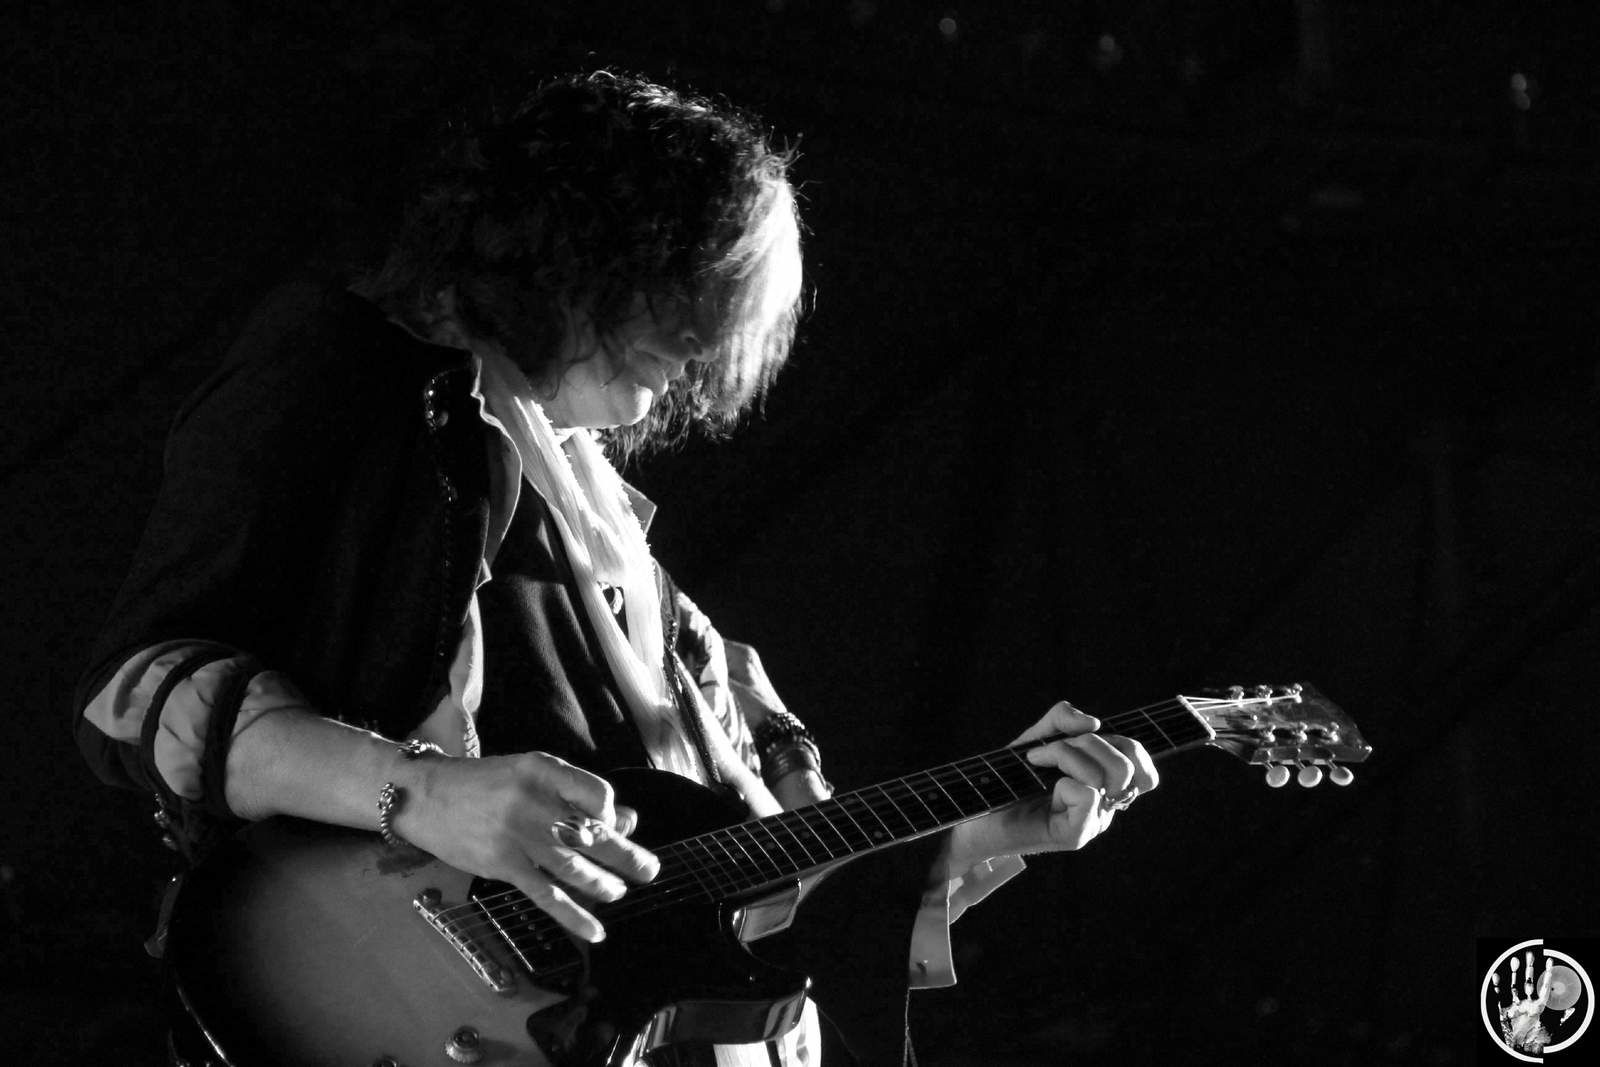 Joe Perry - 7 Nov. 2011 - credit: Josefina, Jota Schmipp